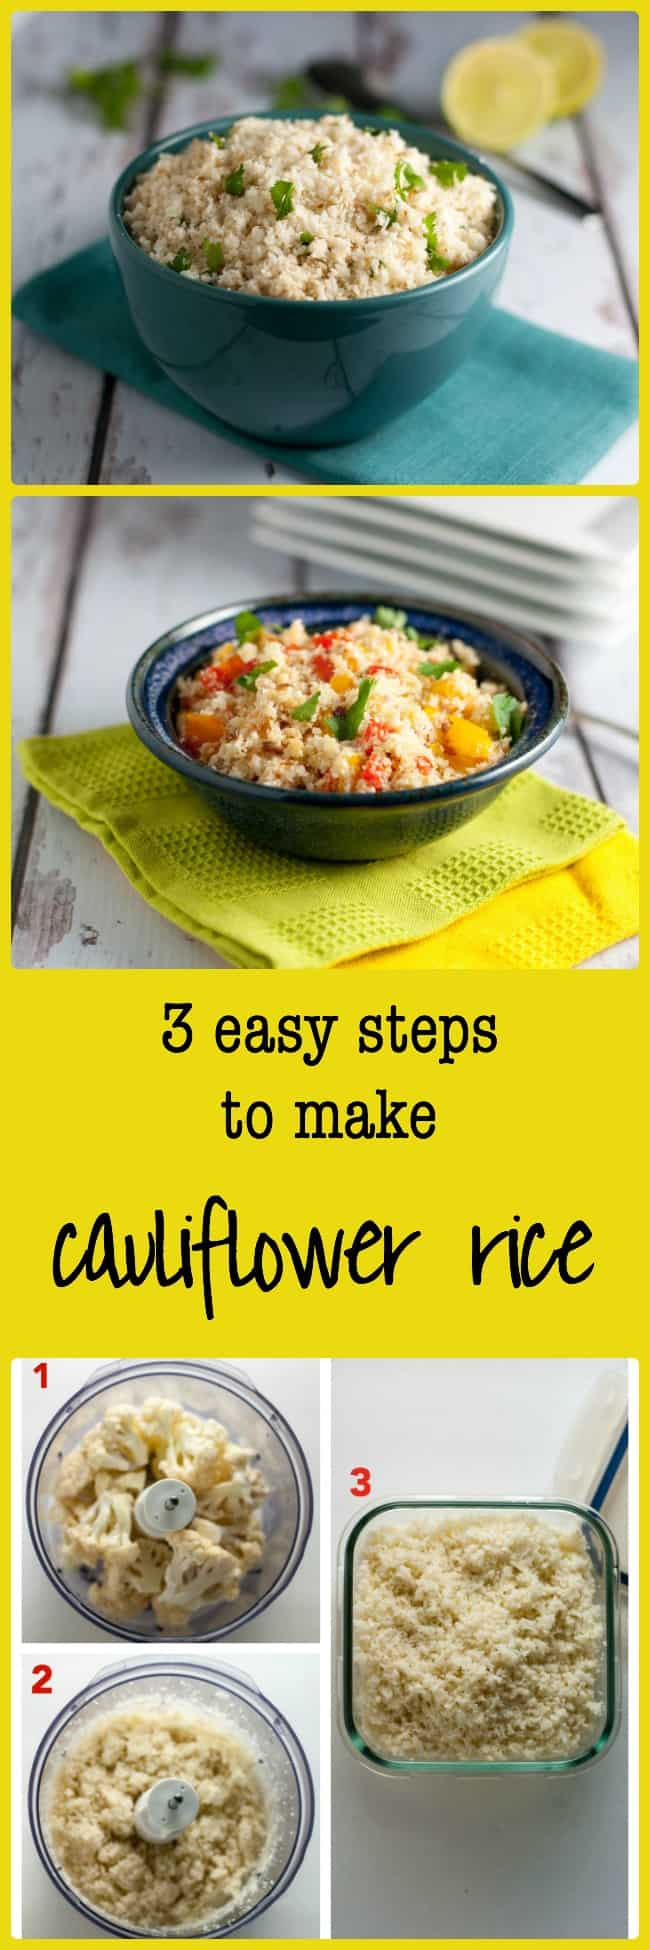 How to Make Cauliflower Rice. Here is a low-carb alternative to regular rice. You won't believe just how good it is until you try it! 3 easy steps.